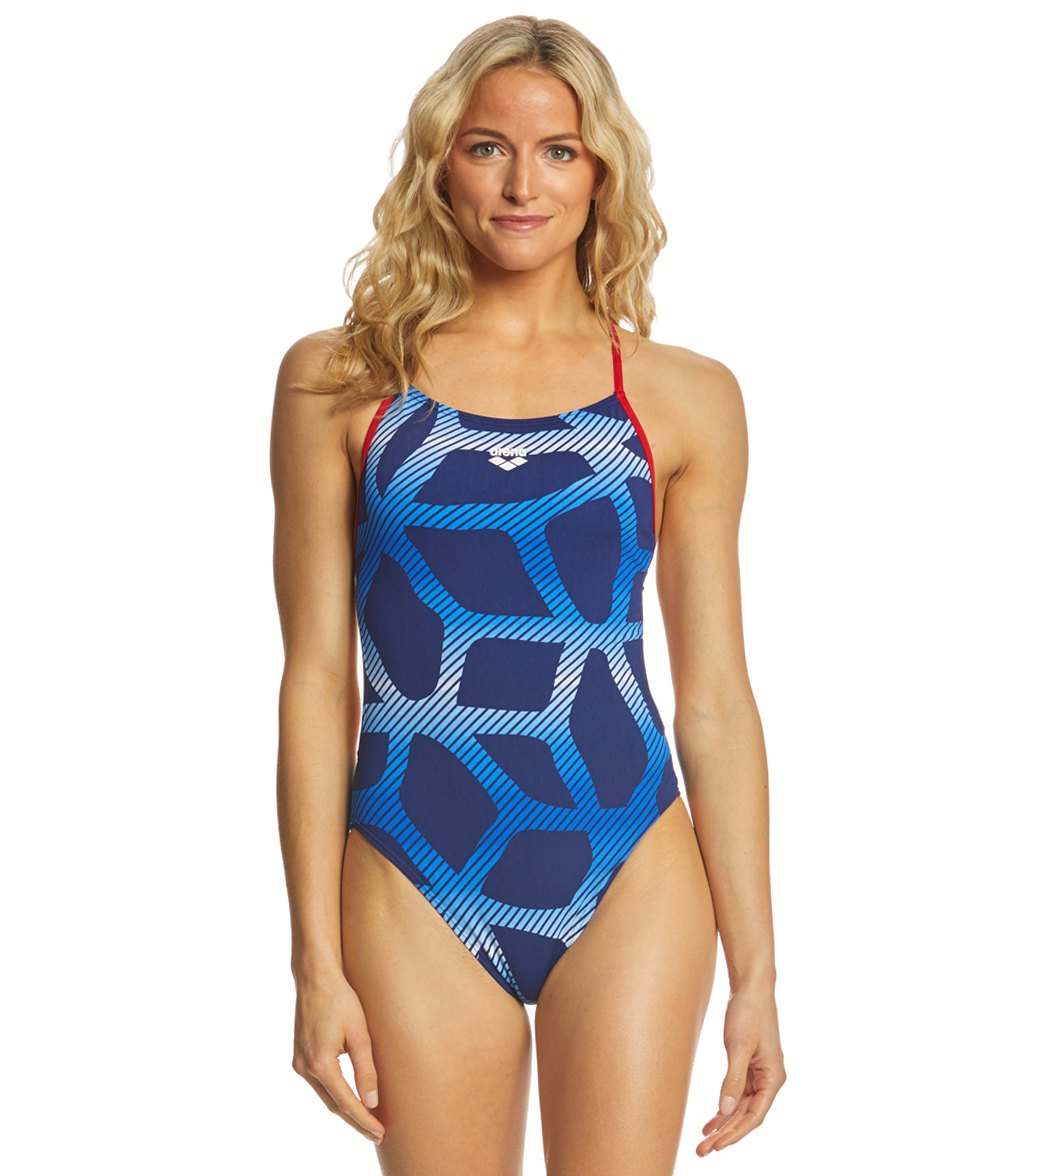 6e60373d712a5 Arena Women's Spider MaxLife Booster Racer Back One Piece Swimsuit at  SwimOutlet.com - Free Shipping